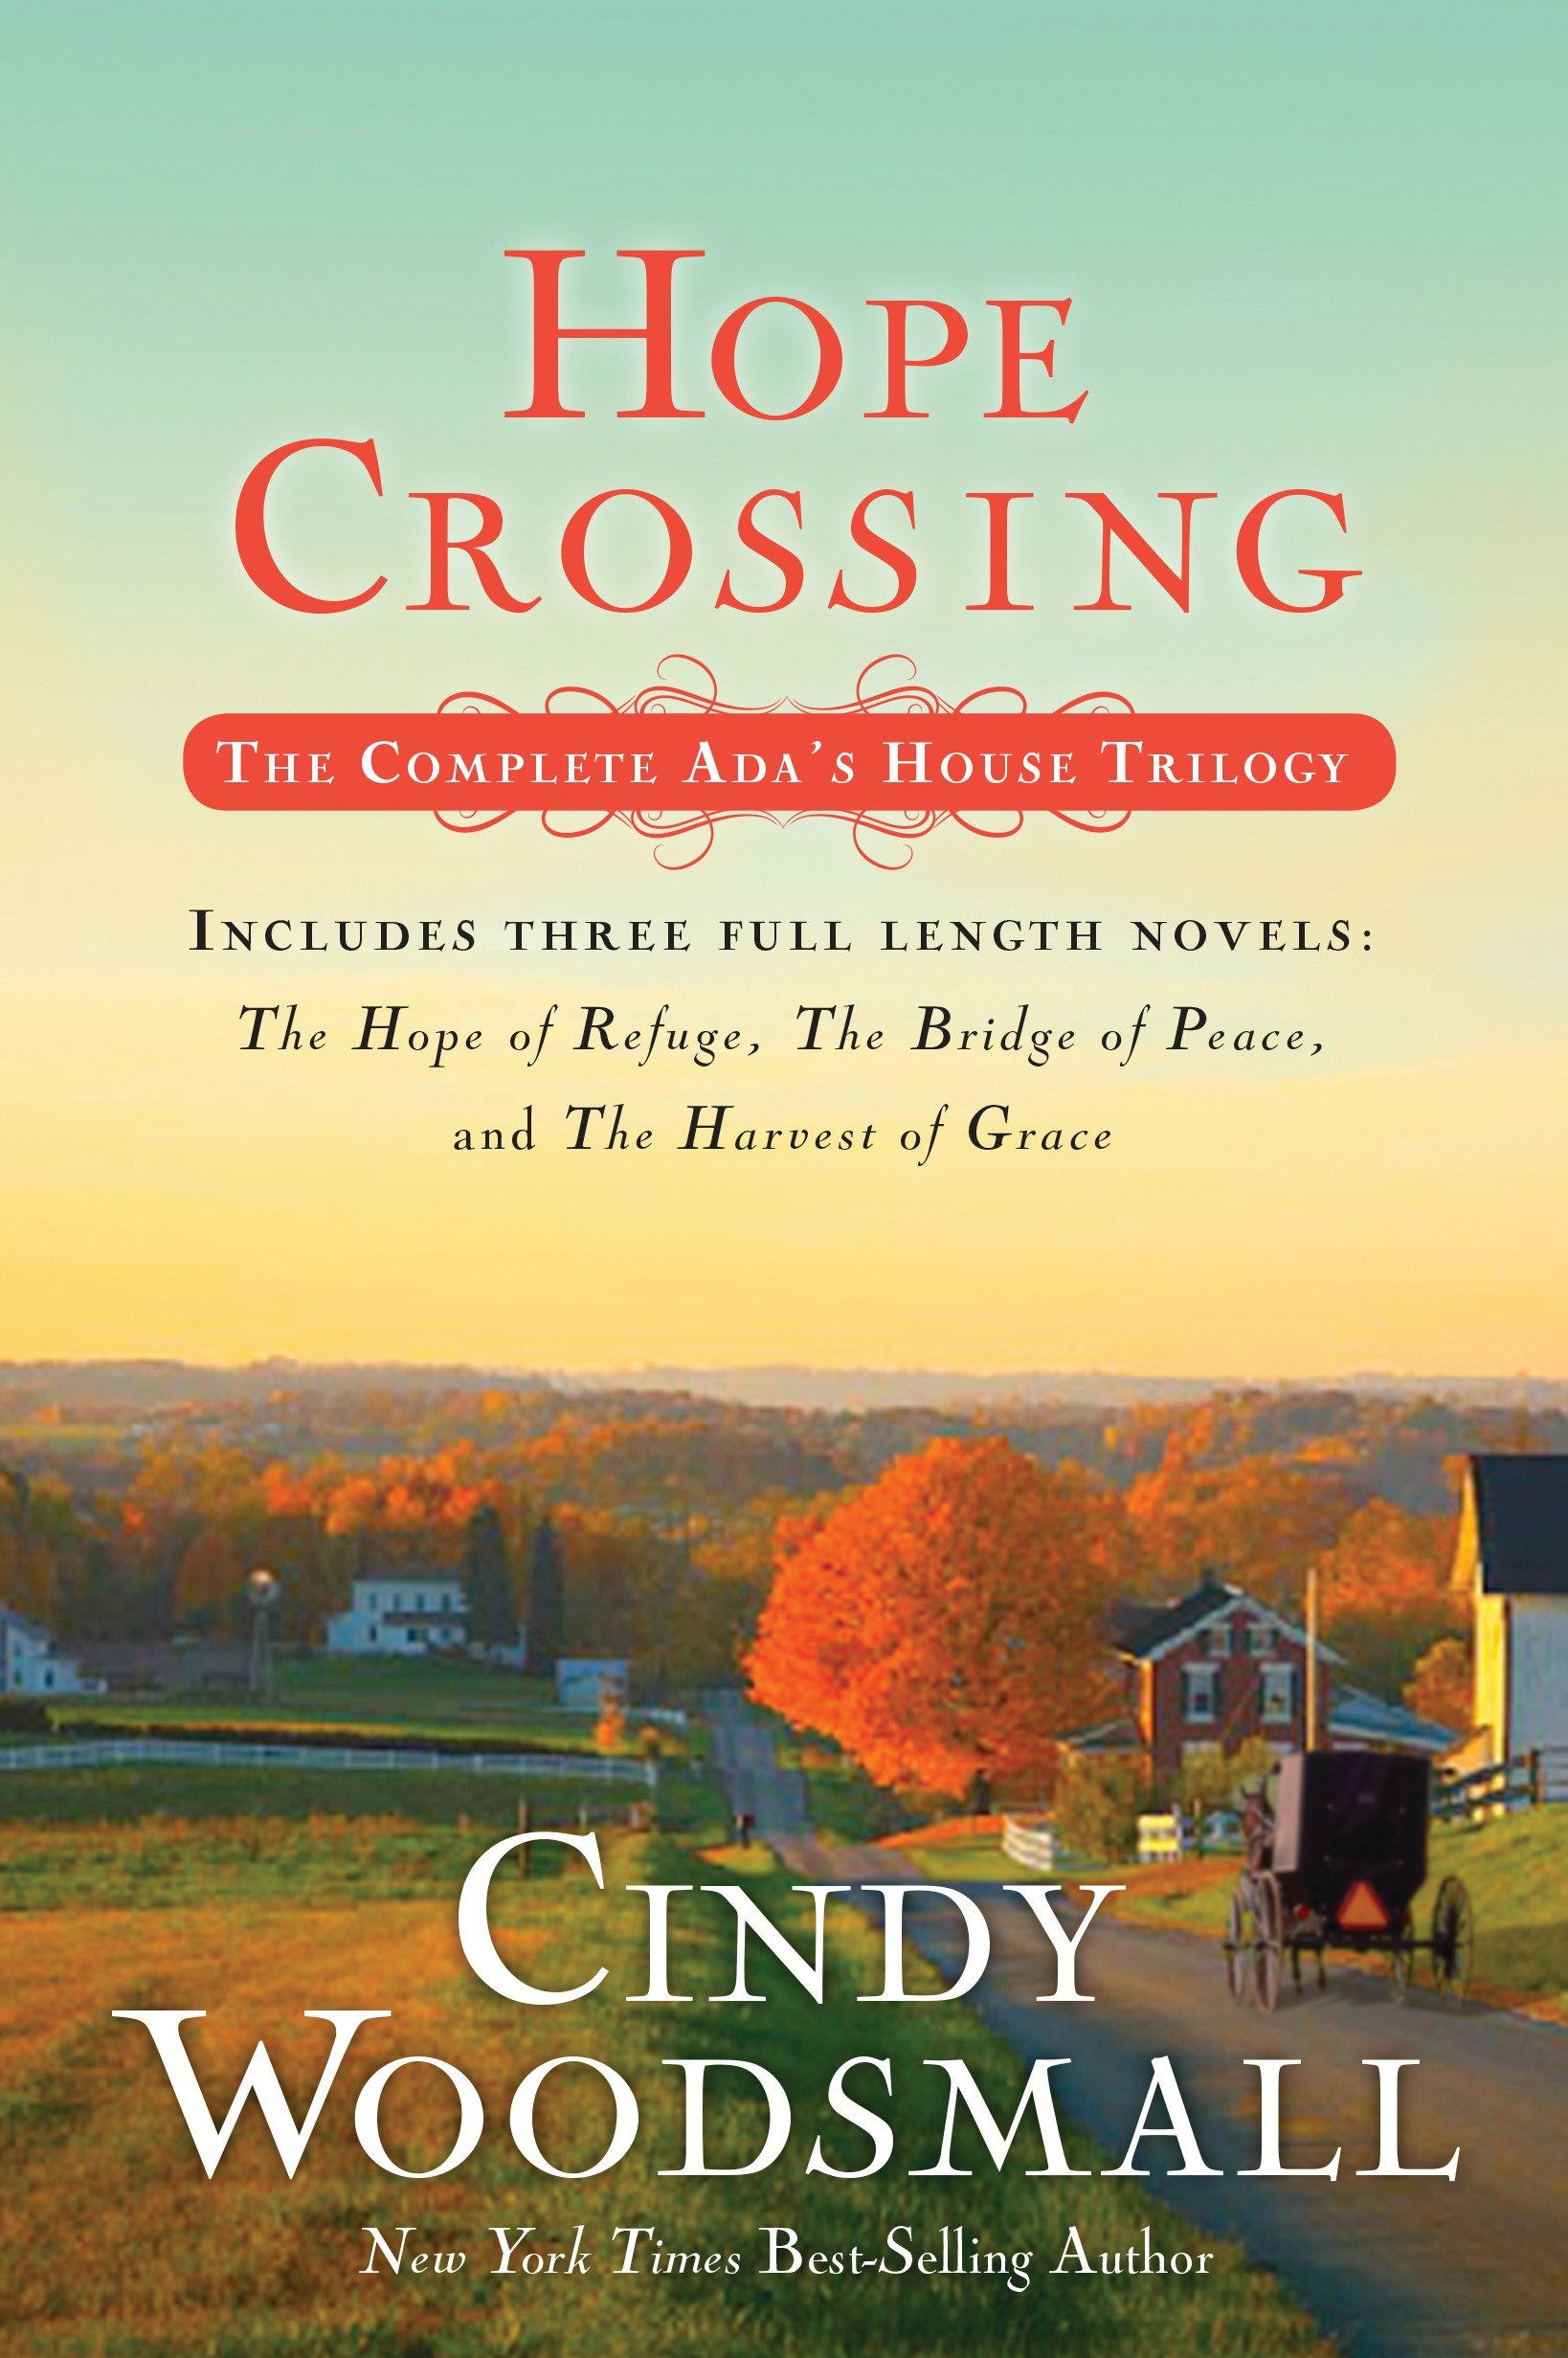 Hope Crossing The Complete Ada's House Trilogy, includes The Hope of Refuge, The Bridge of Peace, and The Harvest of Grace